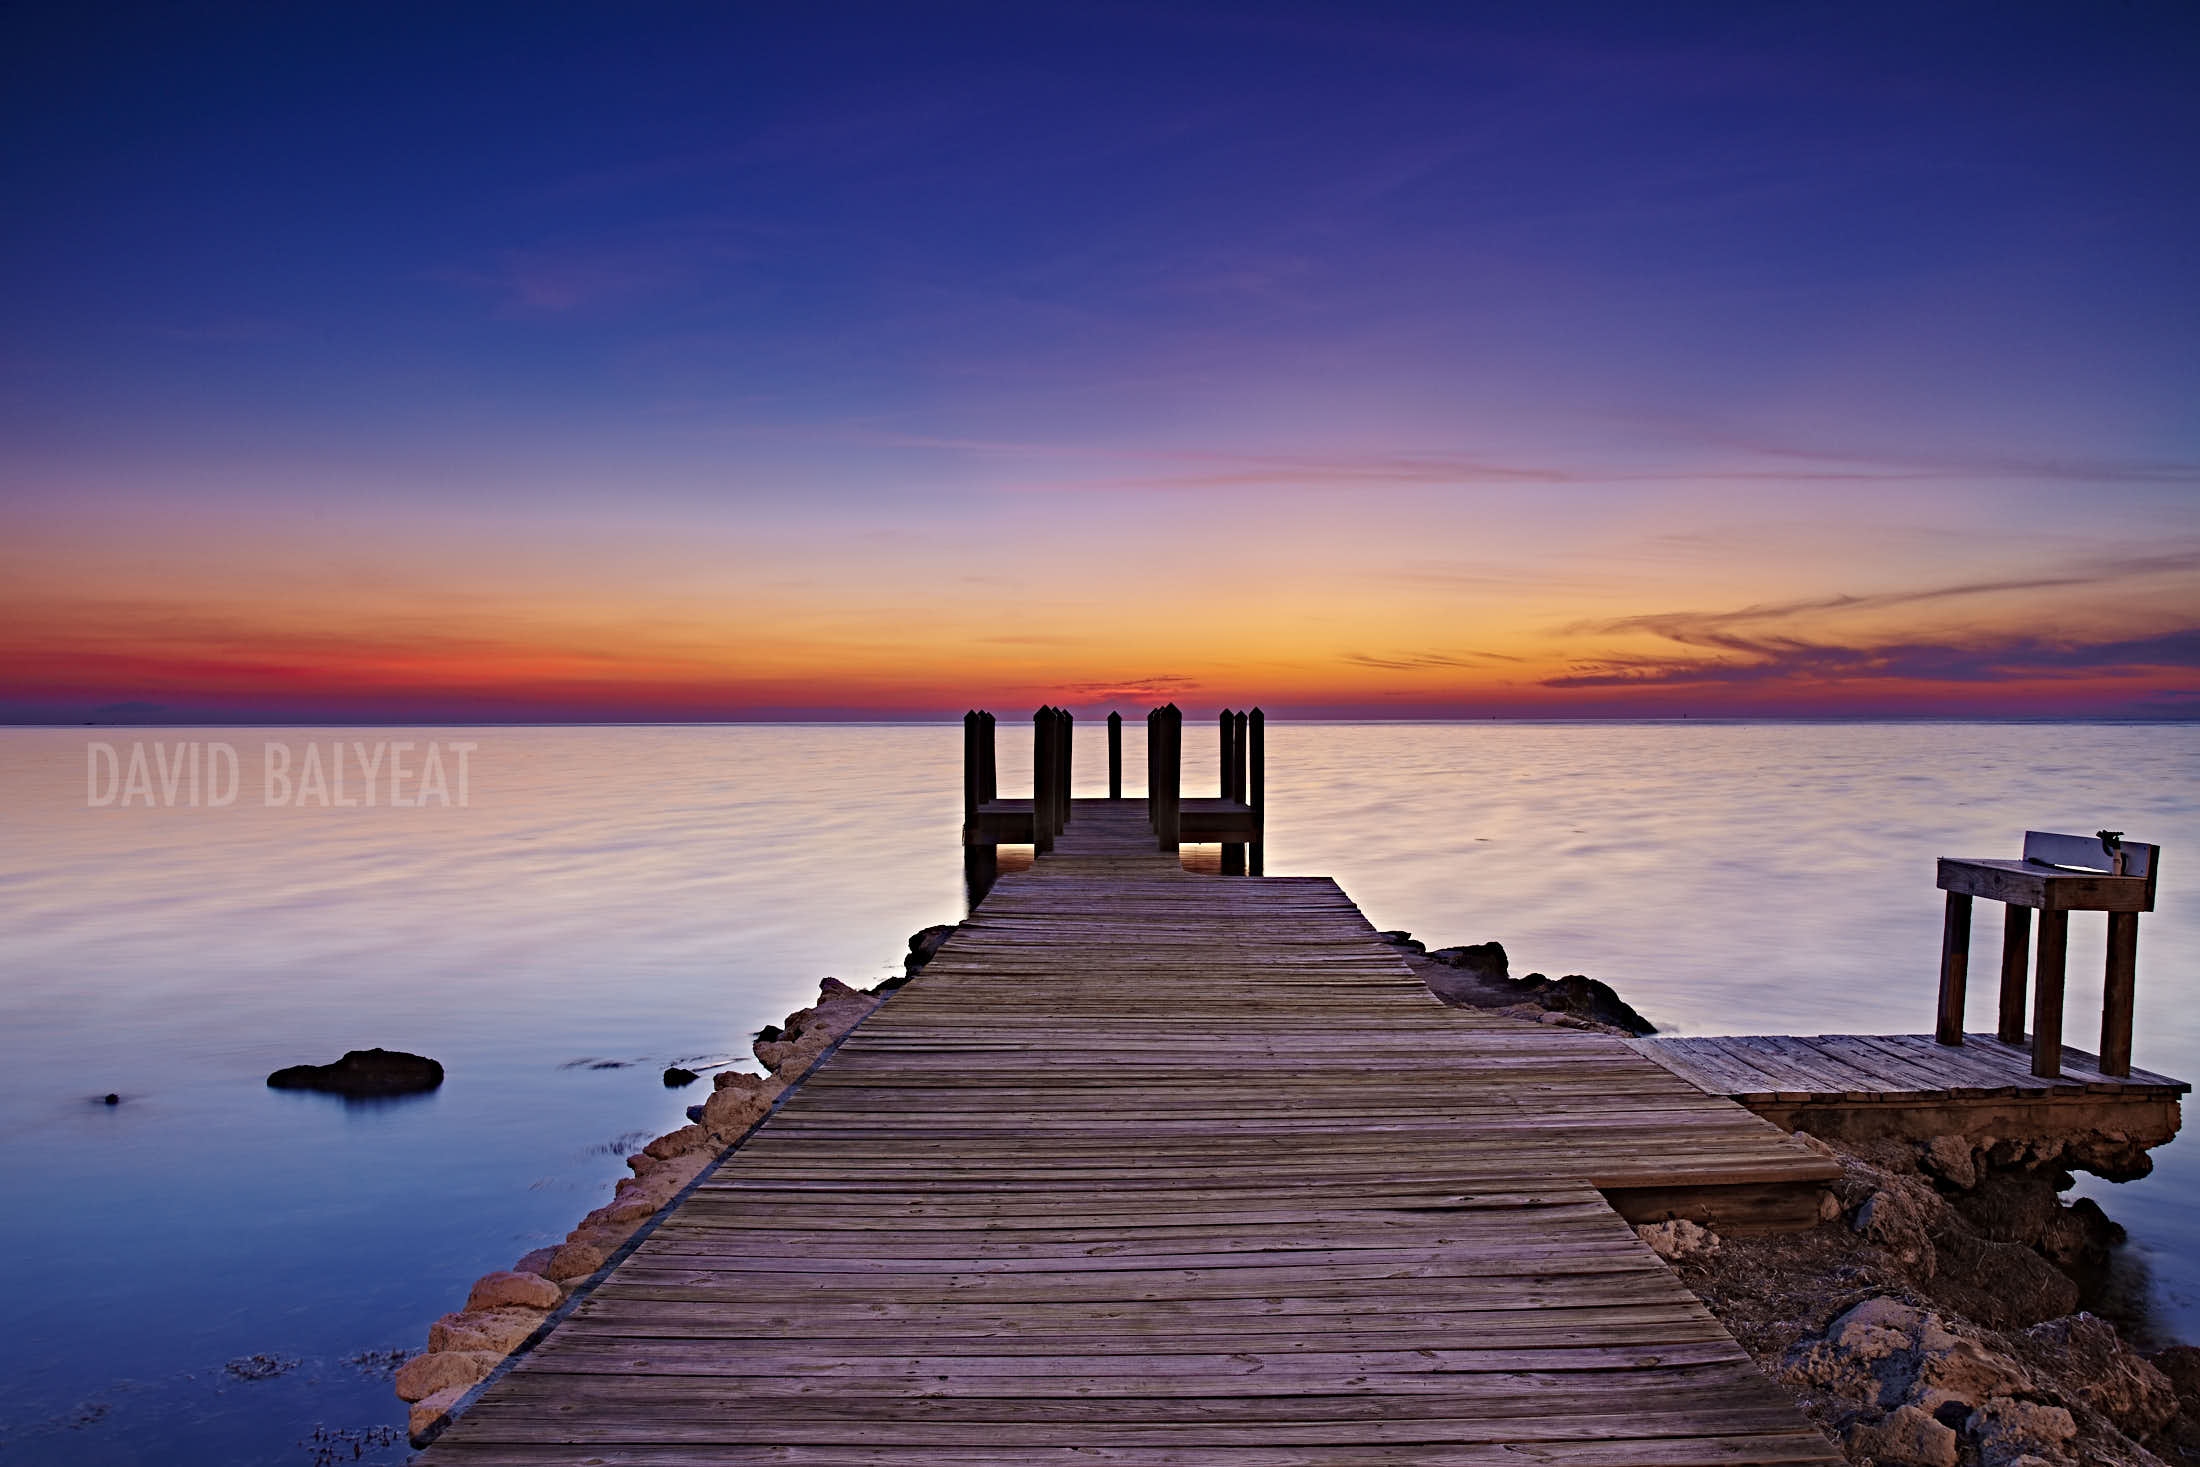 Florida Keys sunset jetty high-definition HD professional landscape photography